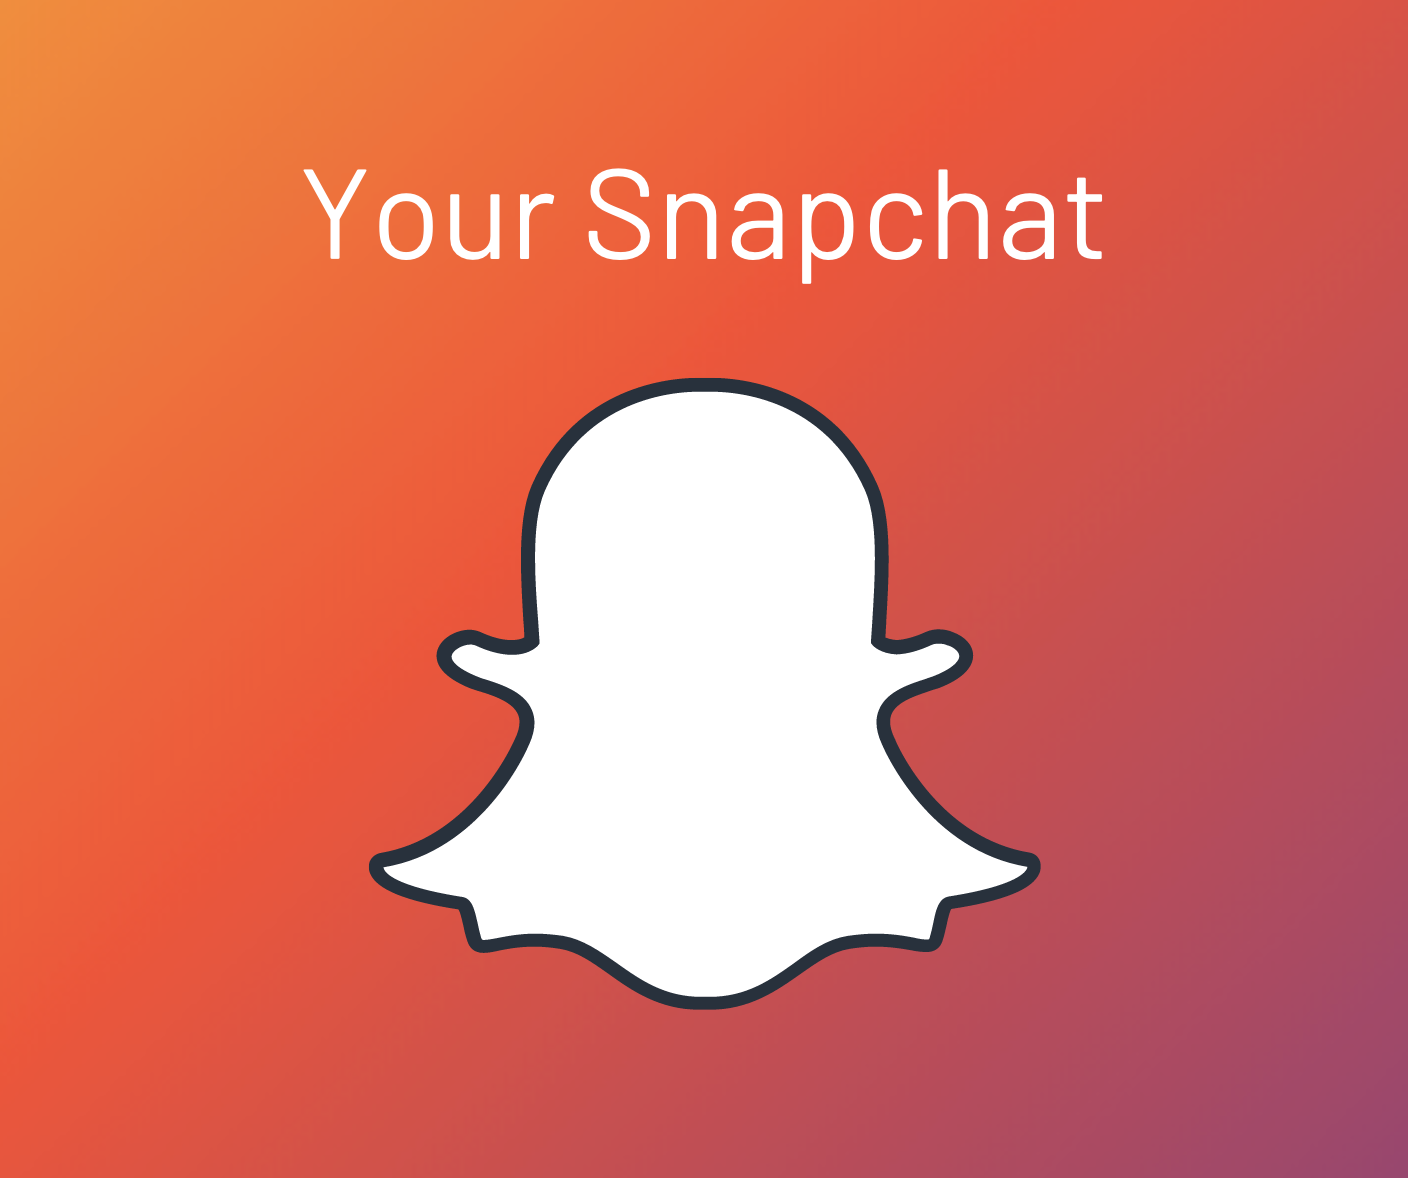 your snapchat